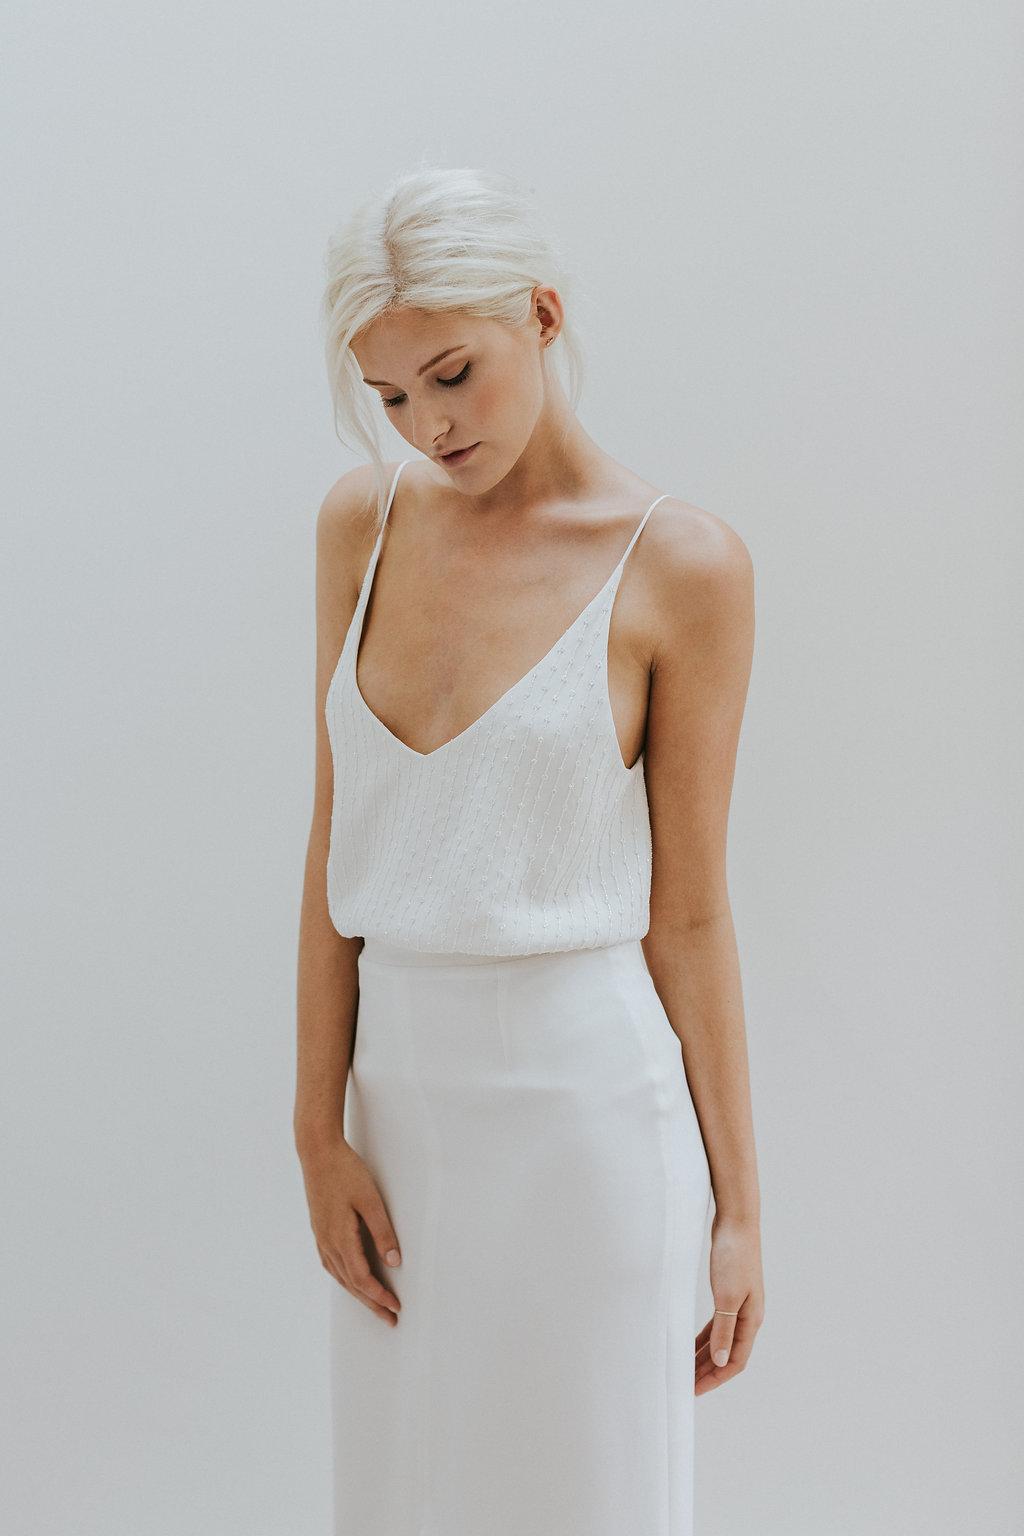 Charlotte simpson bridal made to order dresses bridal for Where to shop for dresses to wear to a wedding